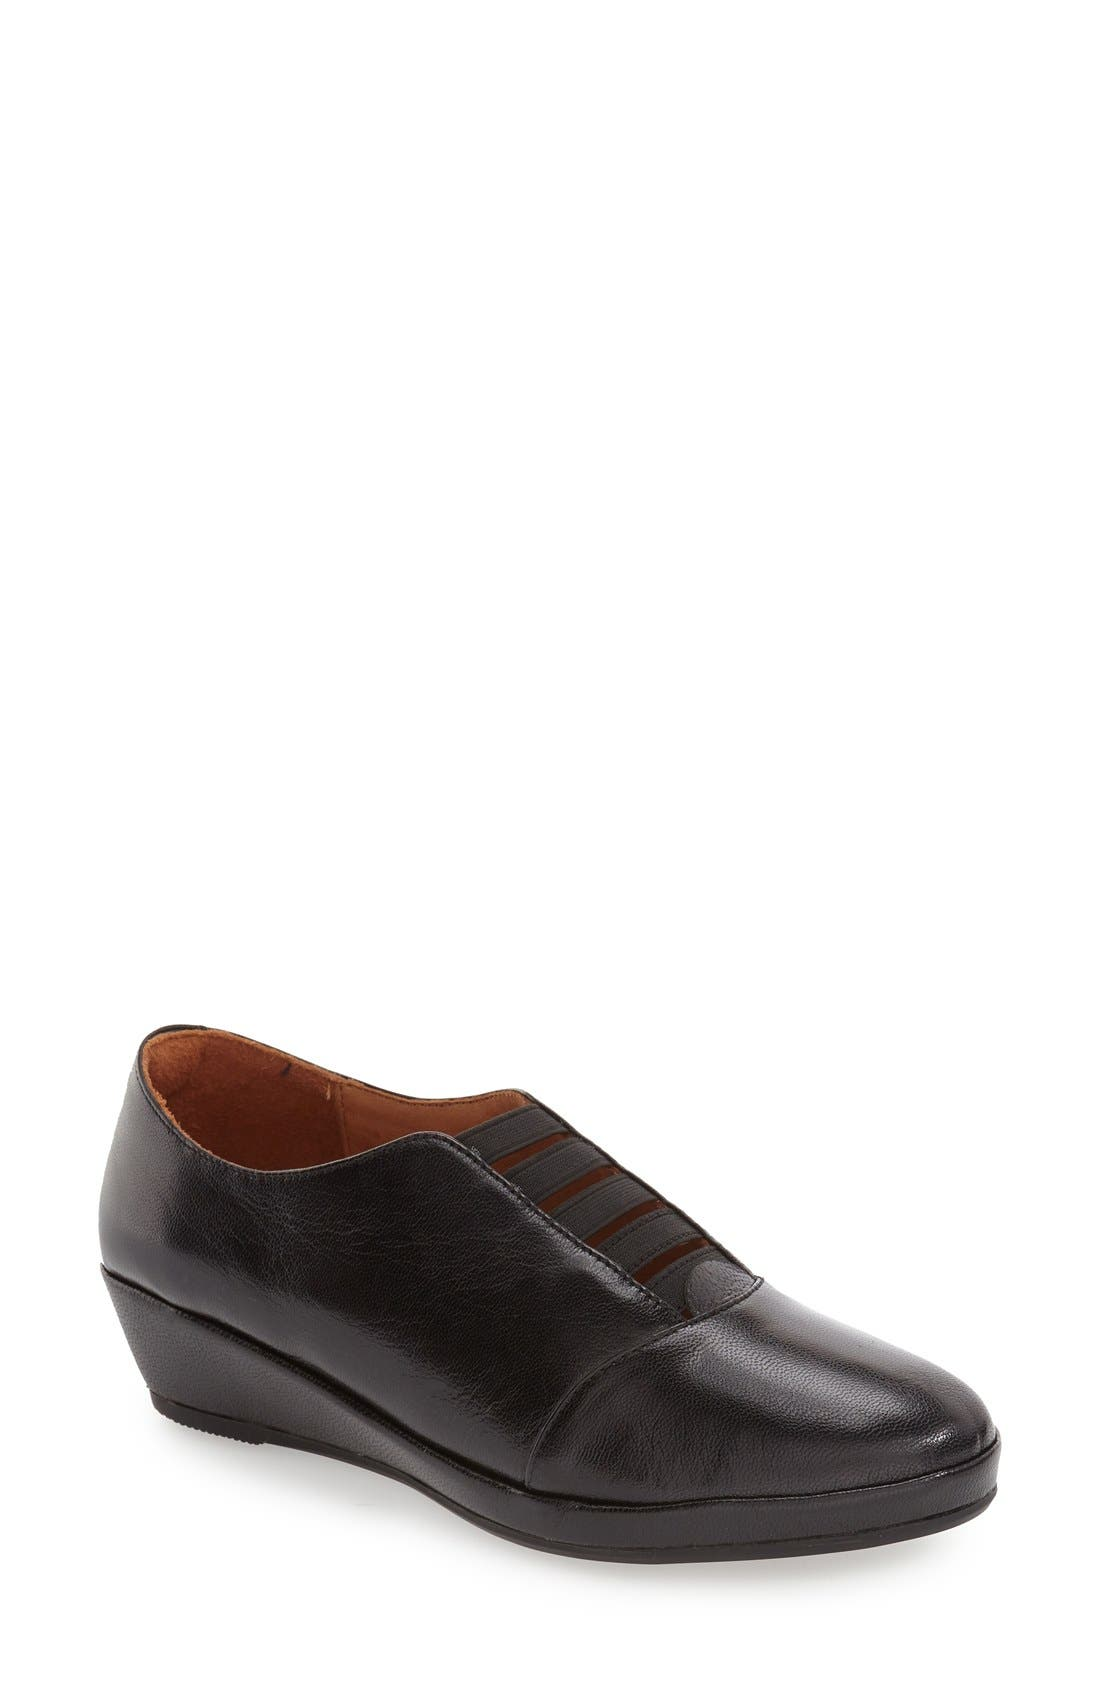 'Beziers' Slip-On,                             Main thumbnail 1, color,                             Black Leather